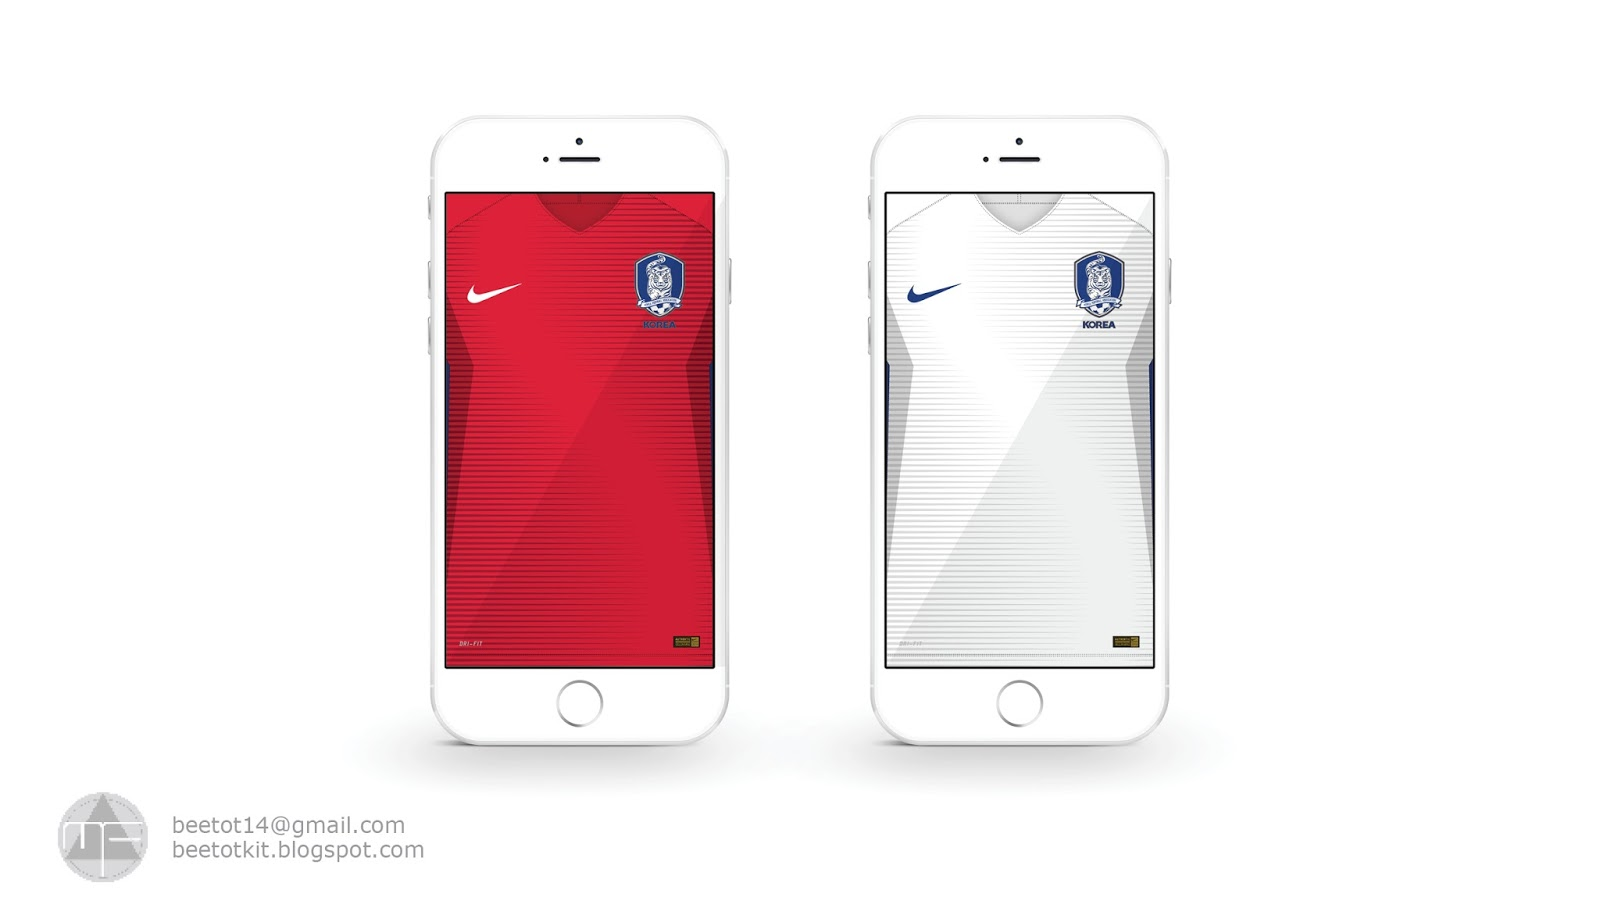 Beetot Kit: South Korea 2016 Kit Iphone 6 Wallpaper